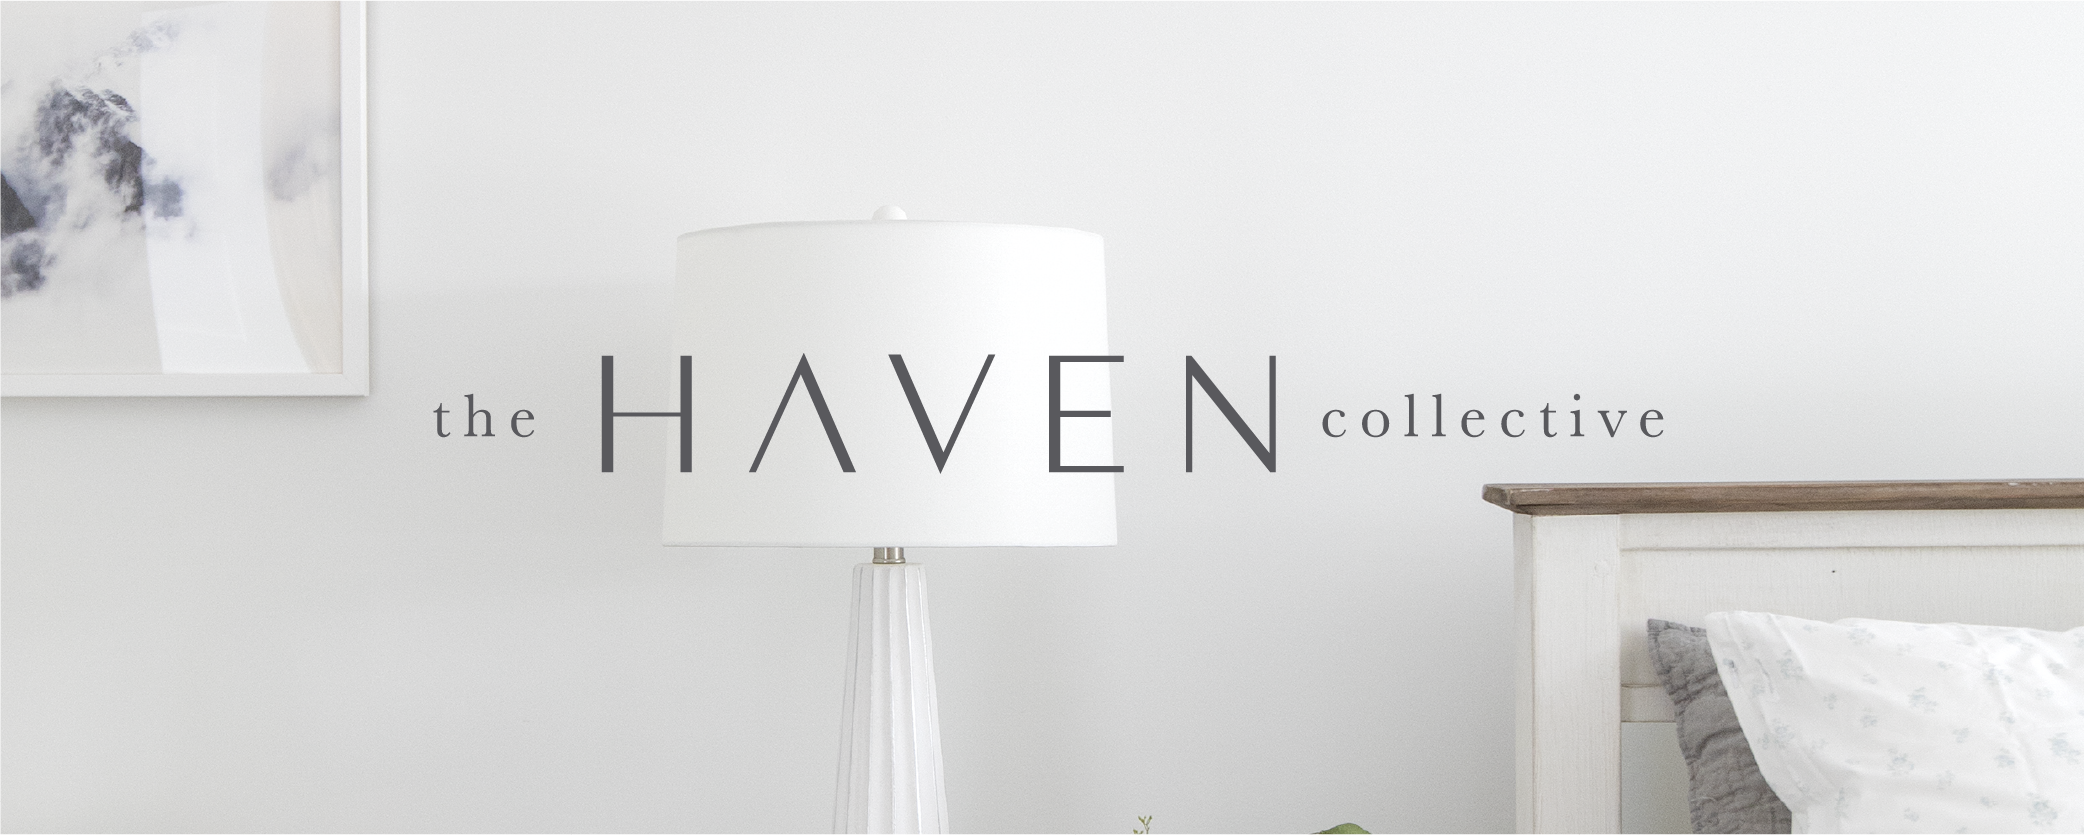 The Haven Collective logo on a photo of a bedroom